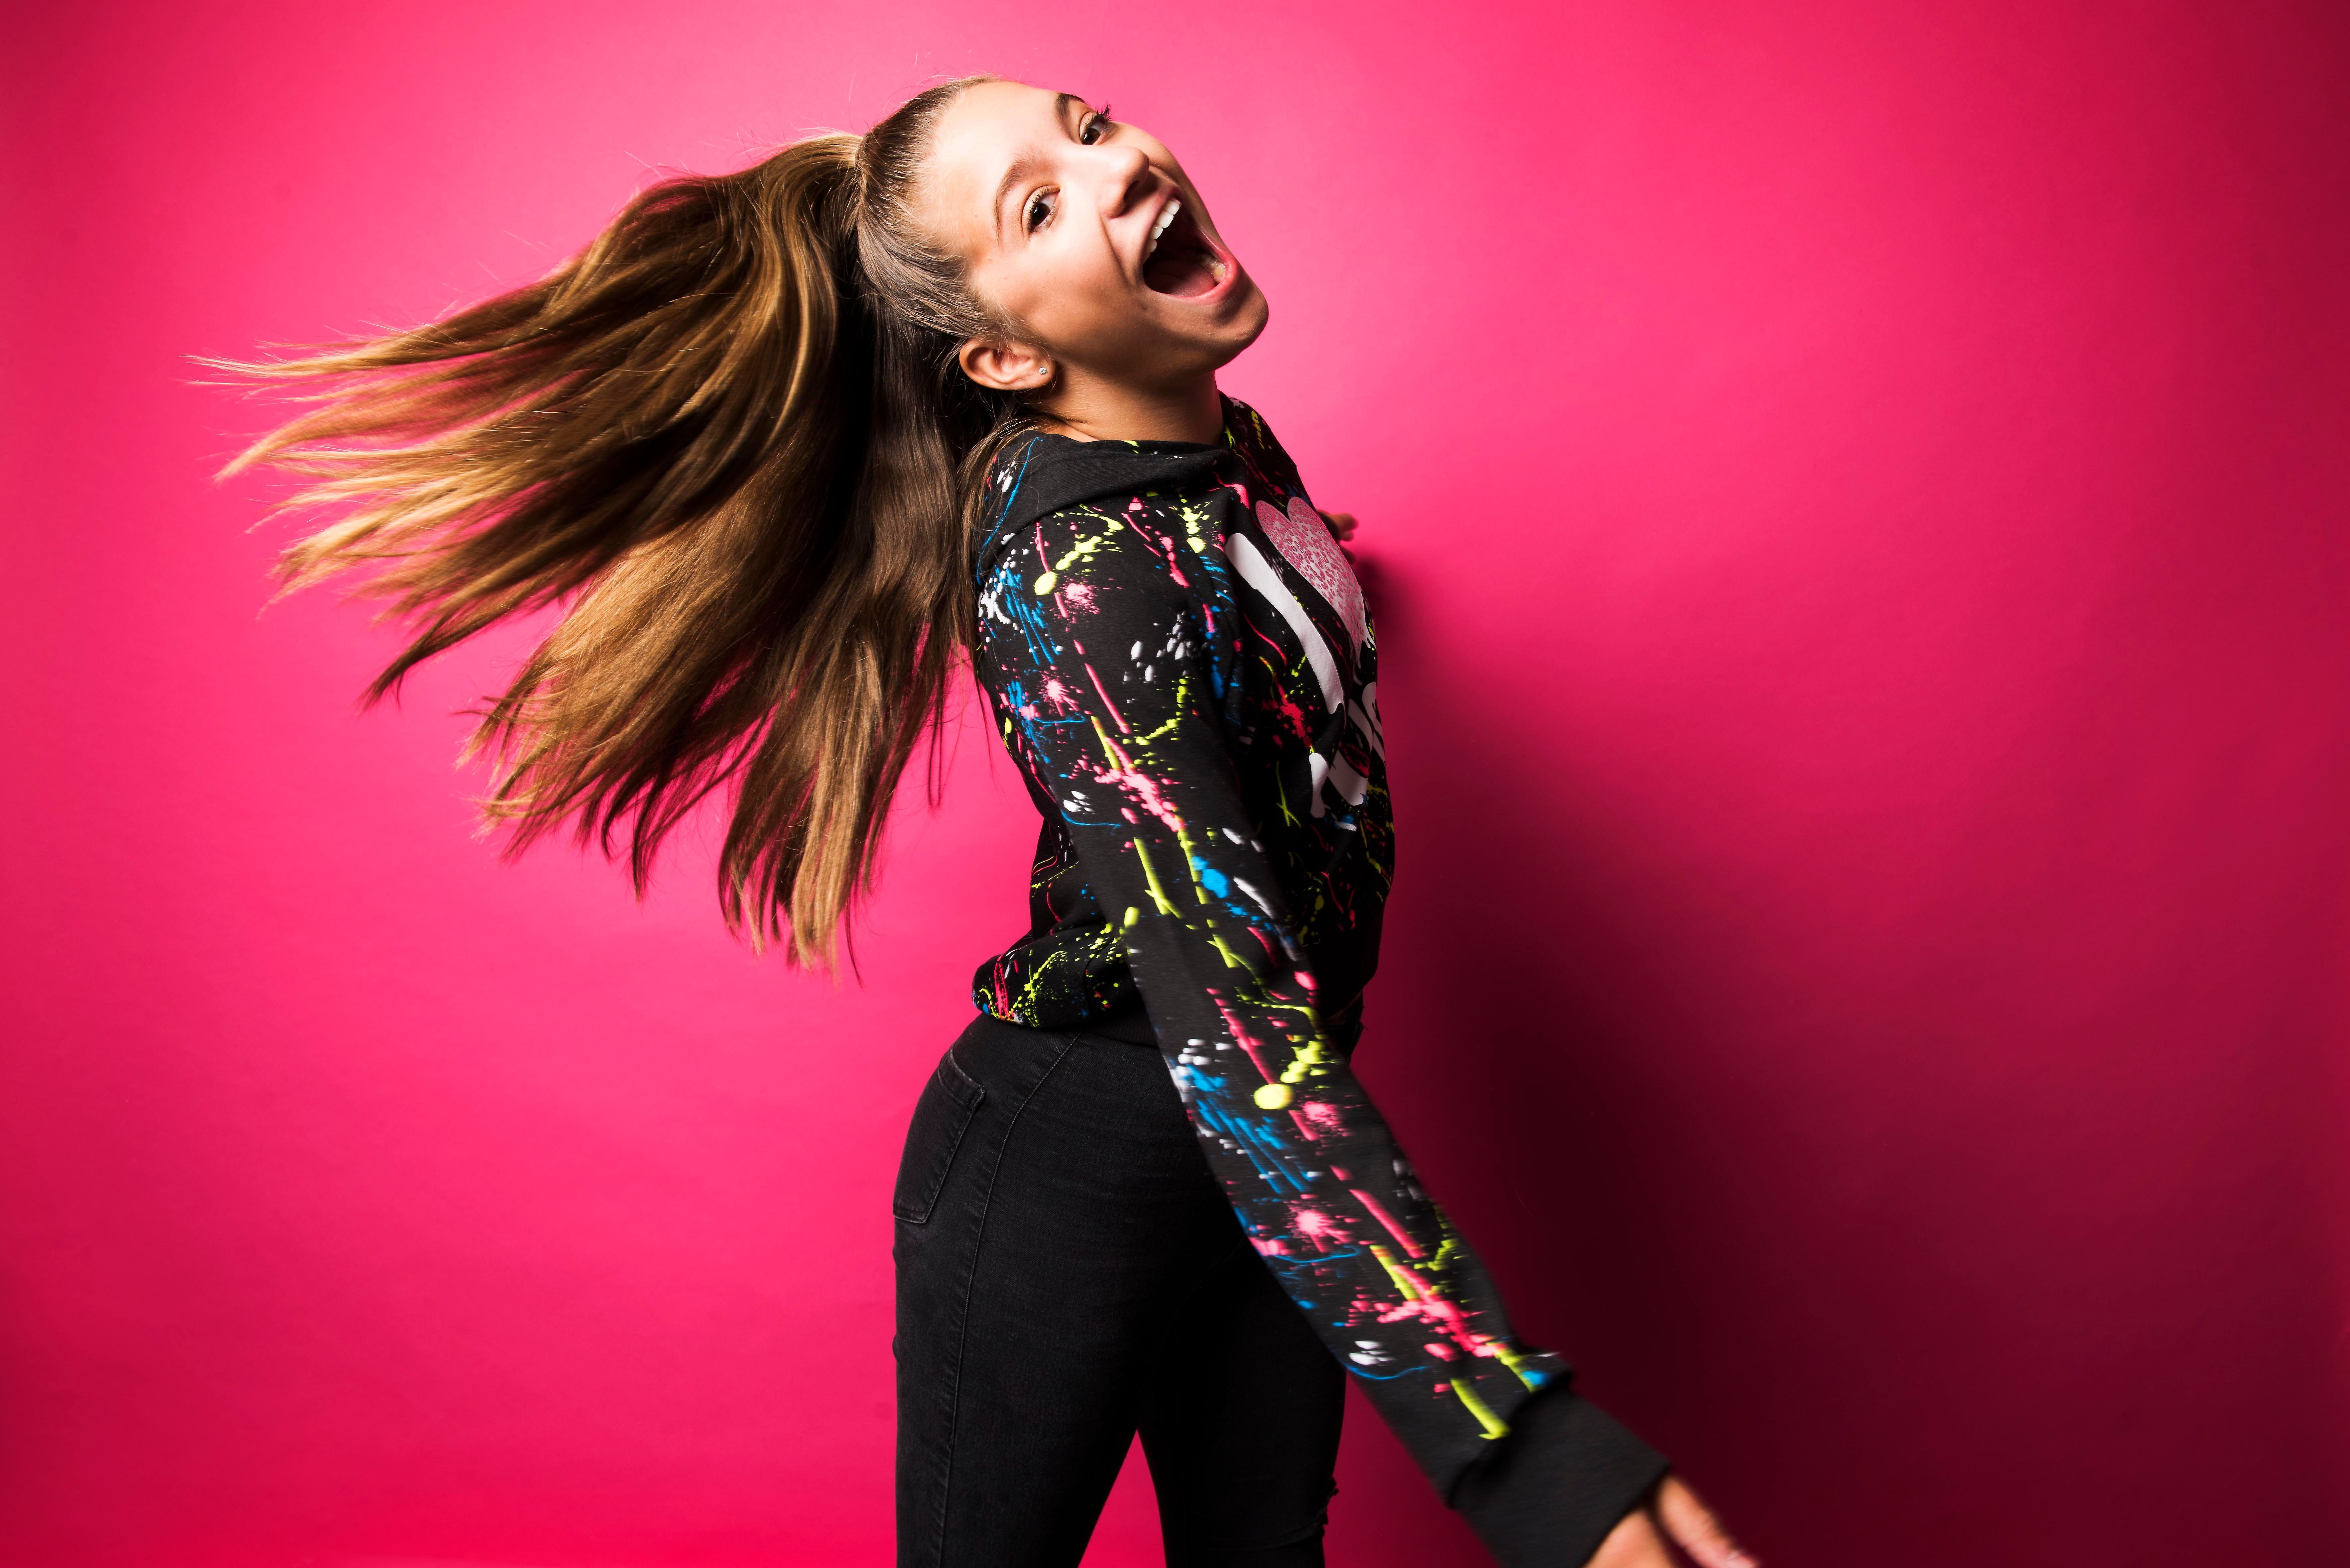 mackenzie ziegler songs - HD 1910×1000